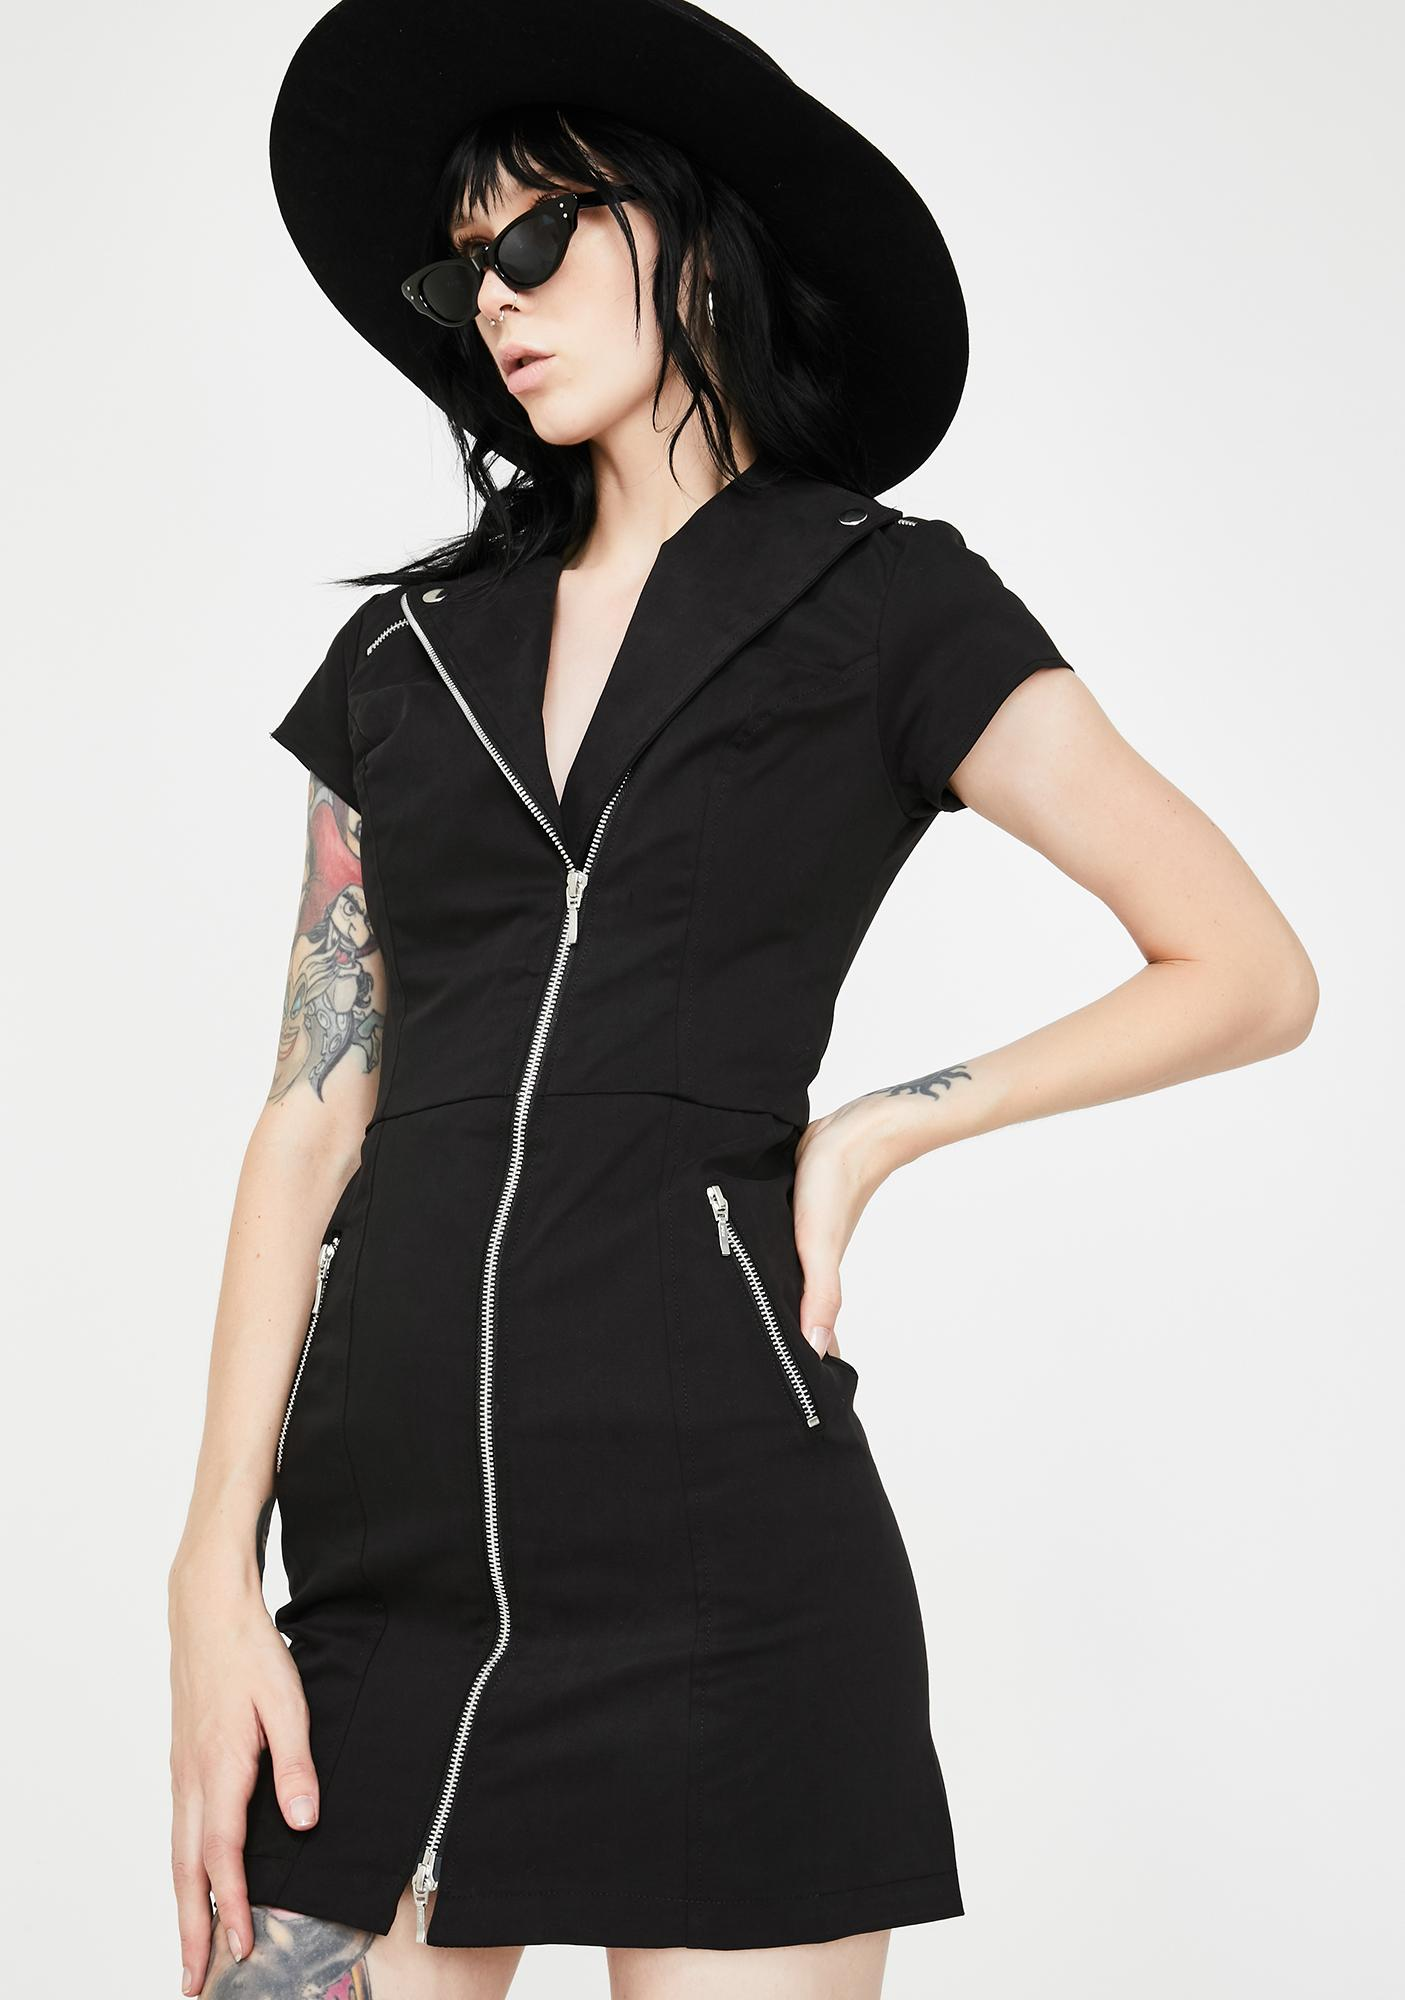 Dr. Faust Witch On The Run Biker Dress